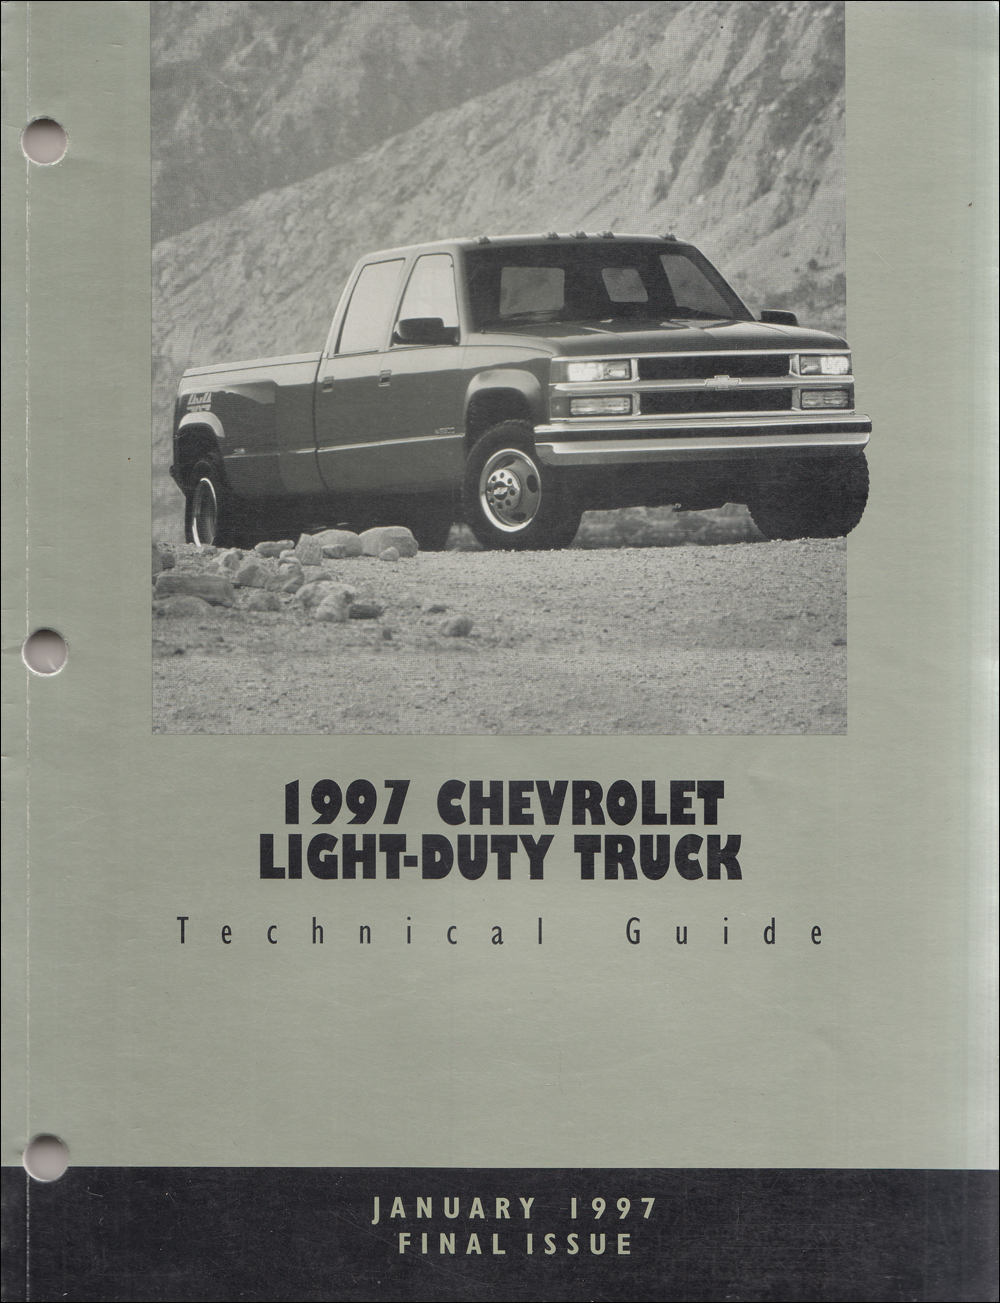 1997 Chevrolet Truck Technical Guide Dealer Album Original Final Issue